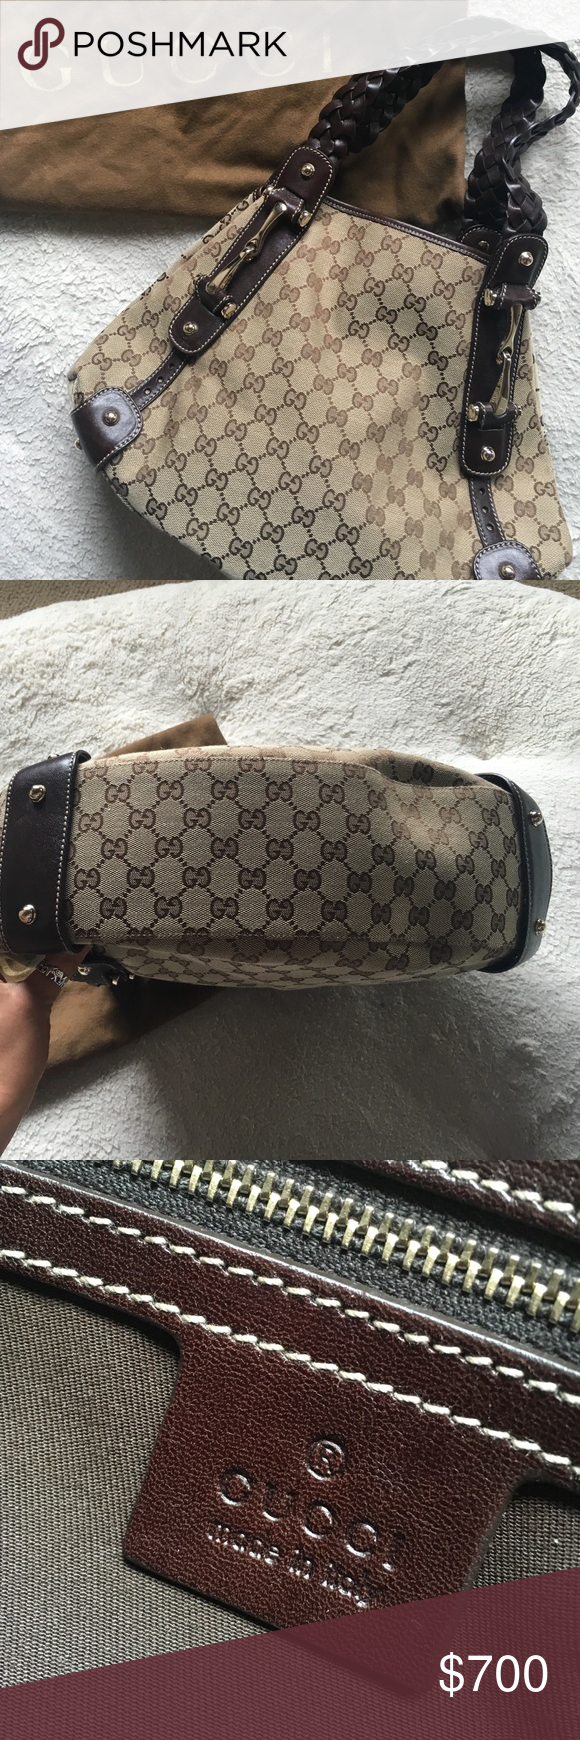 Never worn-Gucci Monogram Pelham 100% authentic 🛍 Brand new Gucci Pelham bag with braided leather straps. Has no fading anywhere. Leather is still plush. Has a tiny scratch mark on the bag that was there when purchased. 18 inches in length from braid to bottom of the bag. 15 inch across. I have kept this in mint condition but never worn as it was a gift from ex bf purchased at Gucci store. No receipts but comes with dust bag and poshmark can authenticate it. Feel free to ask any questions…